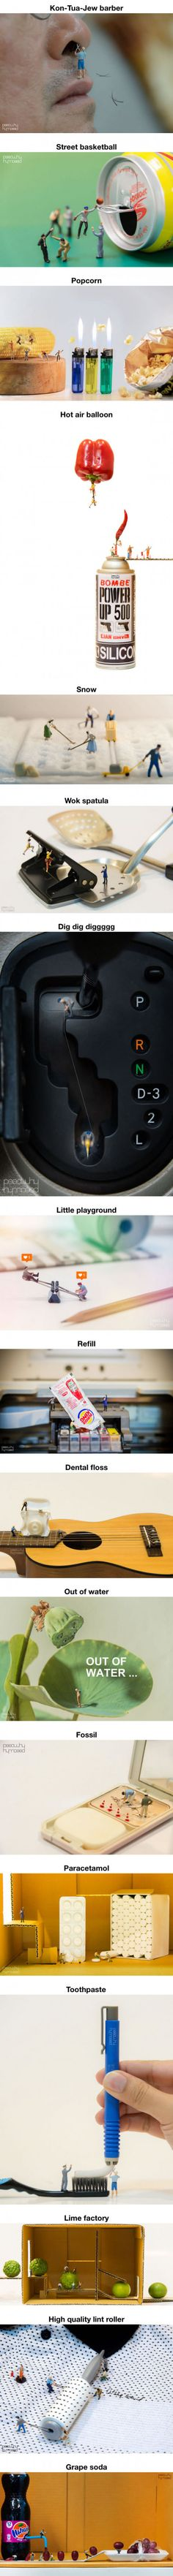 Artist Captures Miniature People Dealing With Everyday Life Objects (By PeeOwhY) - People Photos - Ideas of People Photos - Artist Captures Miniature People Dealing With Everyday Life Objects (By PeeOwhY) Miniature Photography, Art Photography, Best Funny Pictures, Cool Pictures, Miniature Calendar, Tiny World, People Art, Art Plastique, Little People